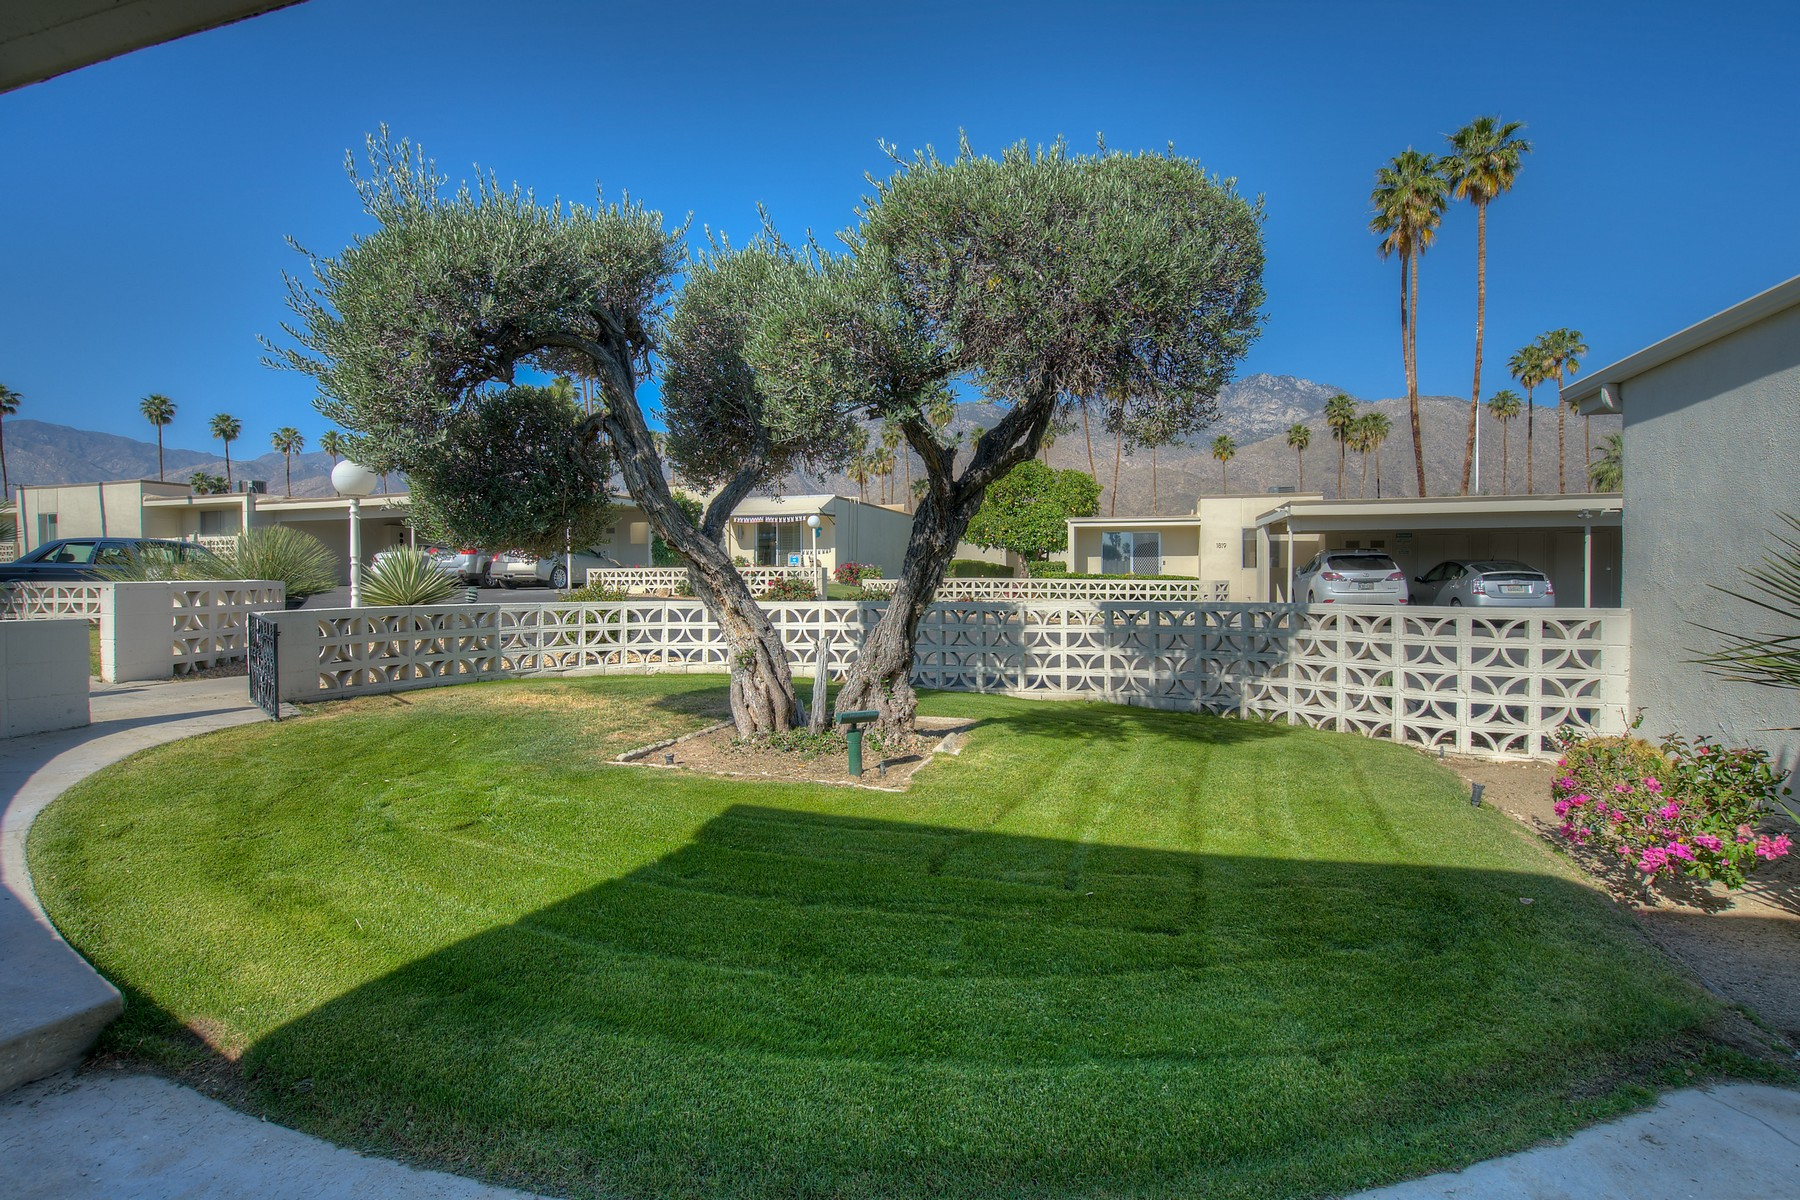 Single Family Home for Sale at 1828 Sandcliff 1828 Sandcliff Rd Palm Springs, California, 92264 United States